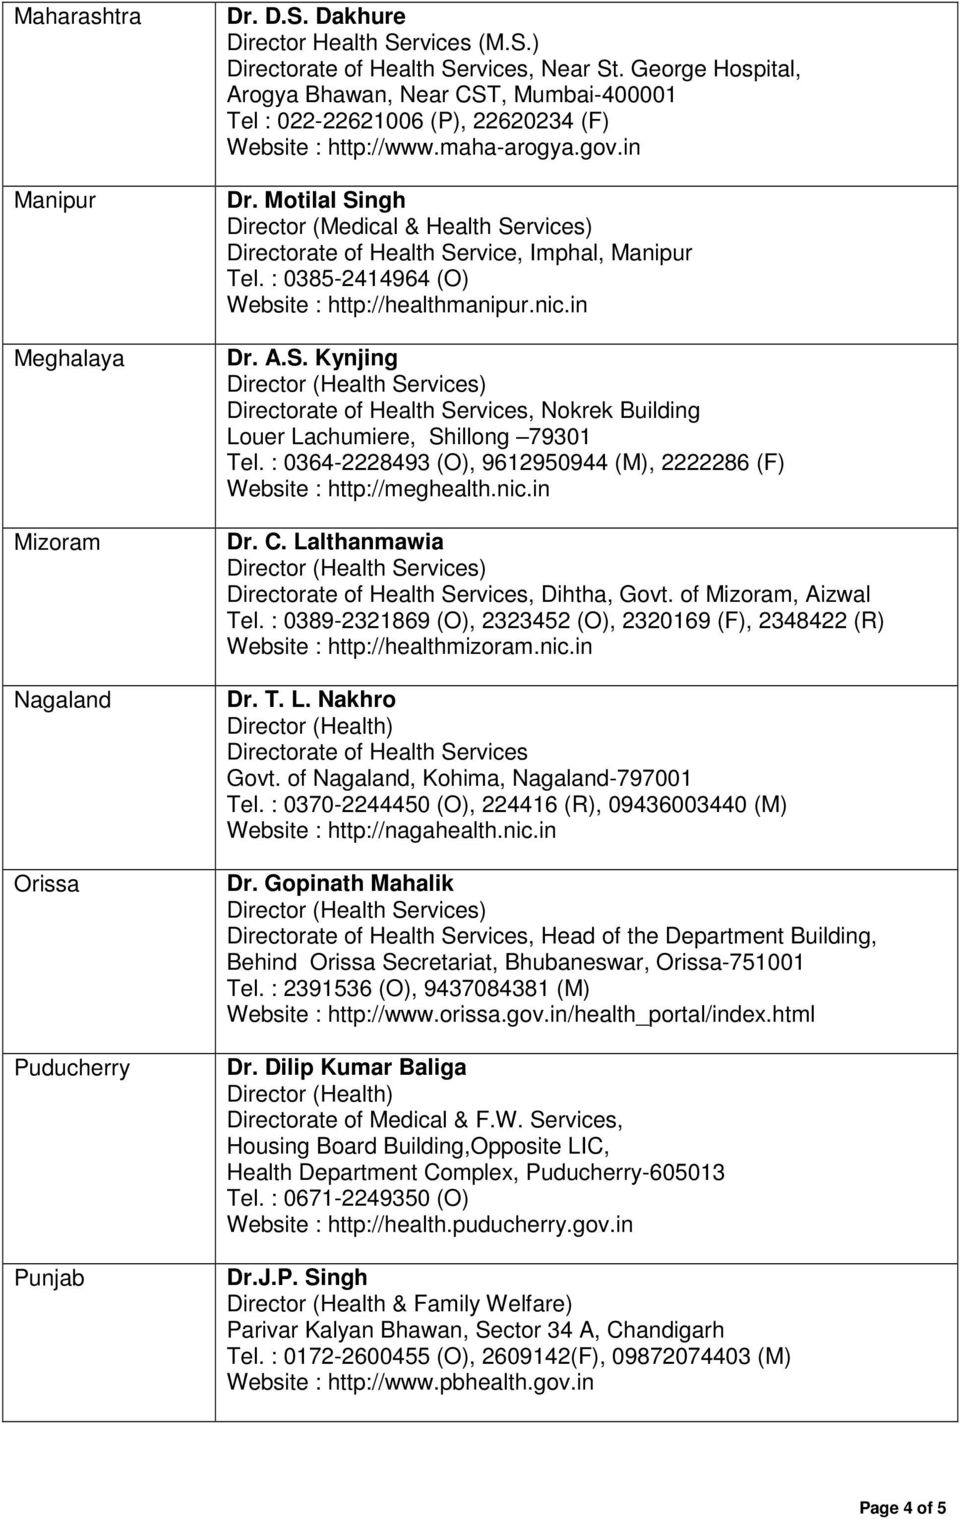 State-wise List of Directors (Health Services) - PDF